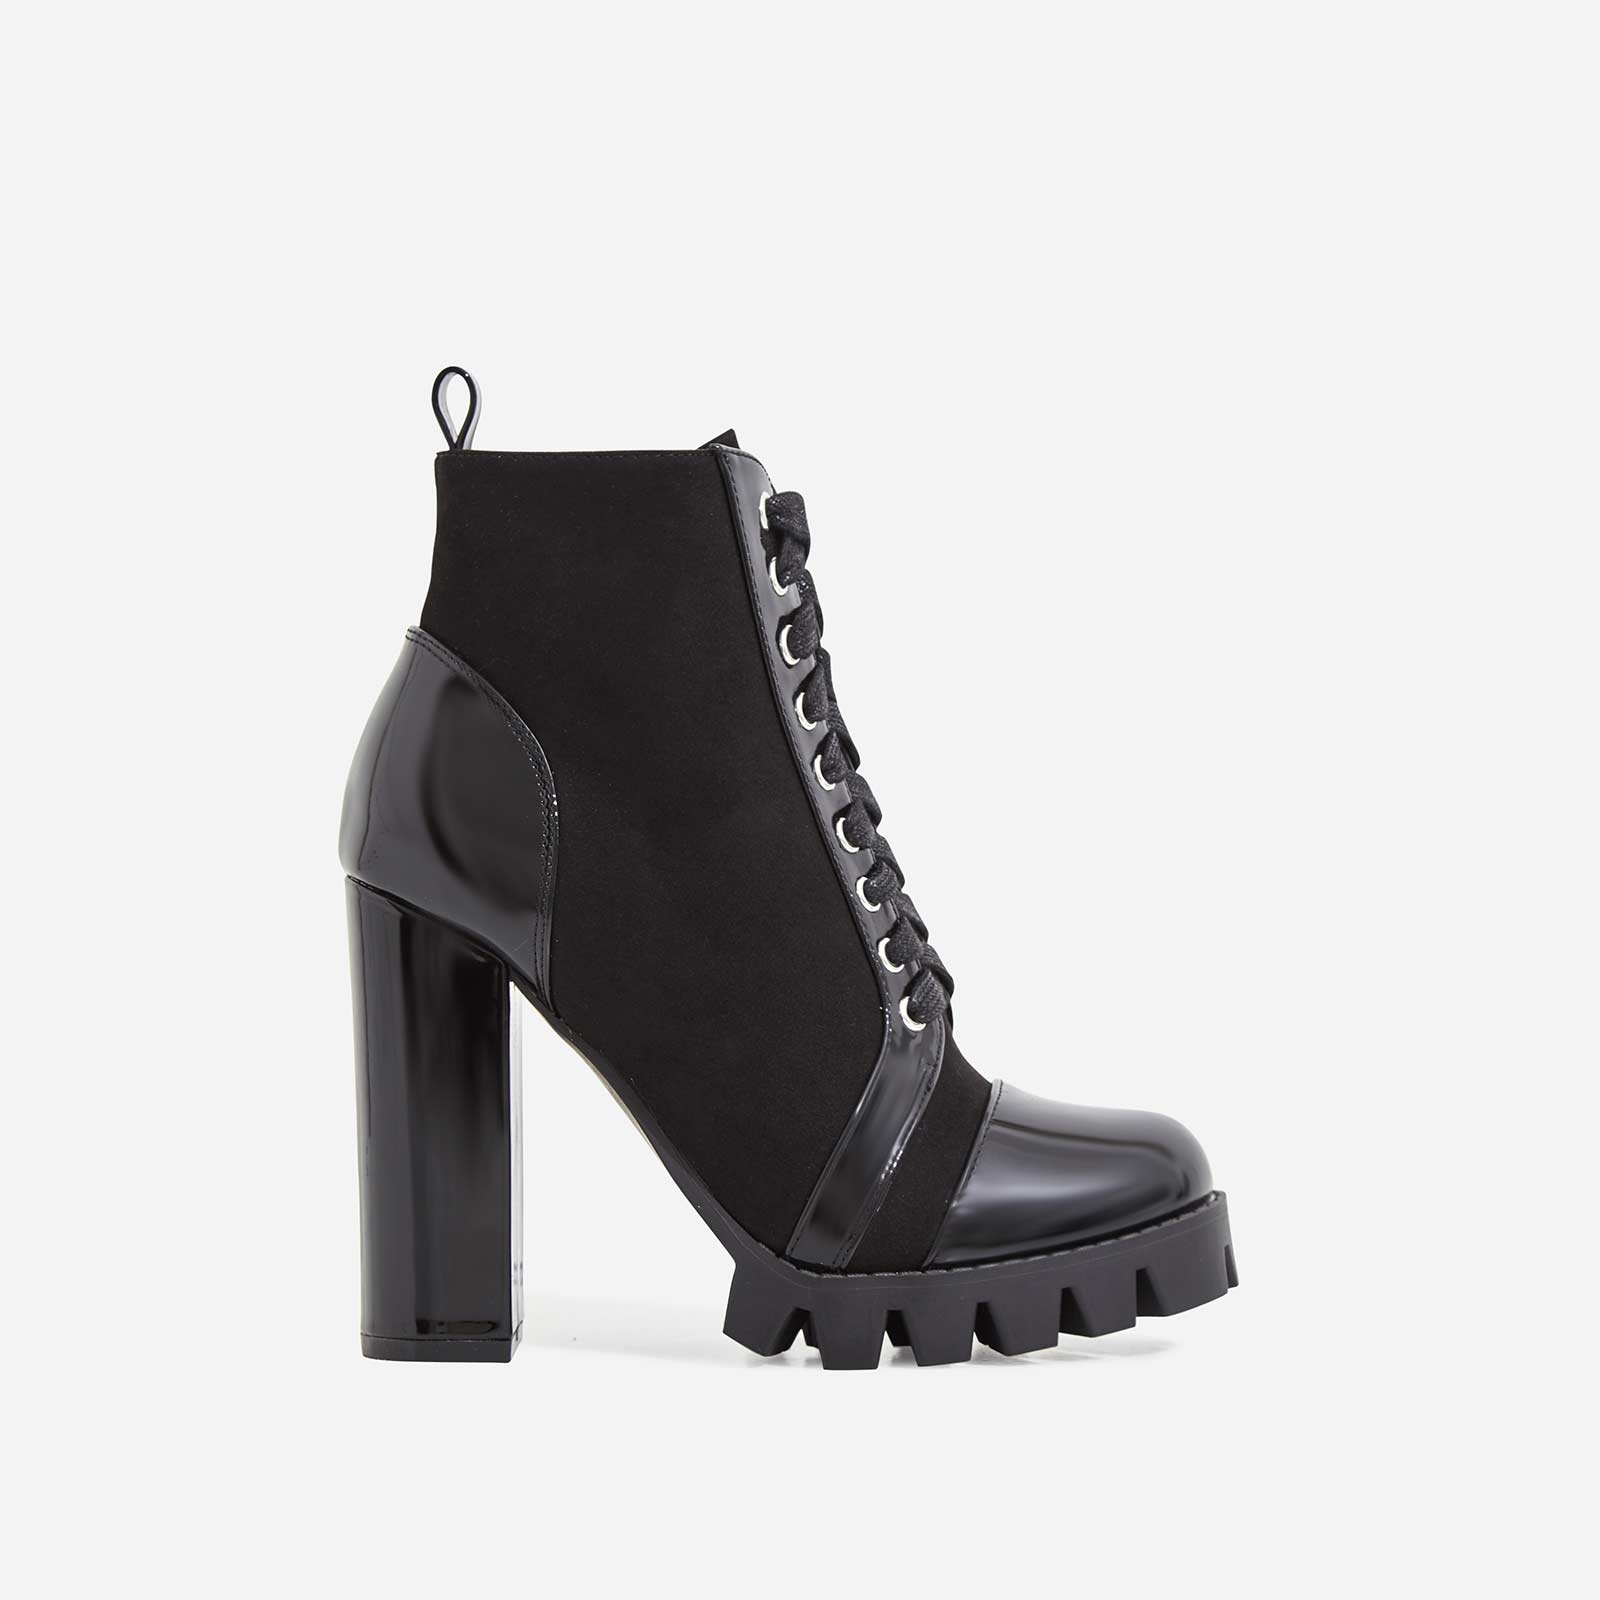 Urban Lace Up Cleated Sole Ankle Boot In Black Faux Suede And Faux Leather